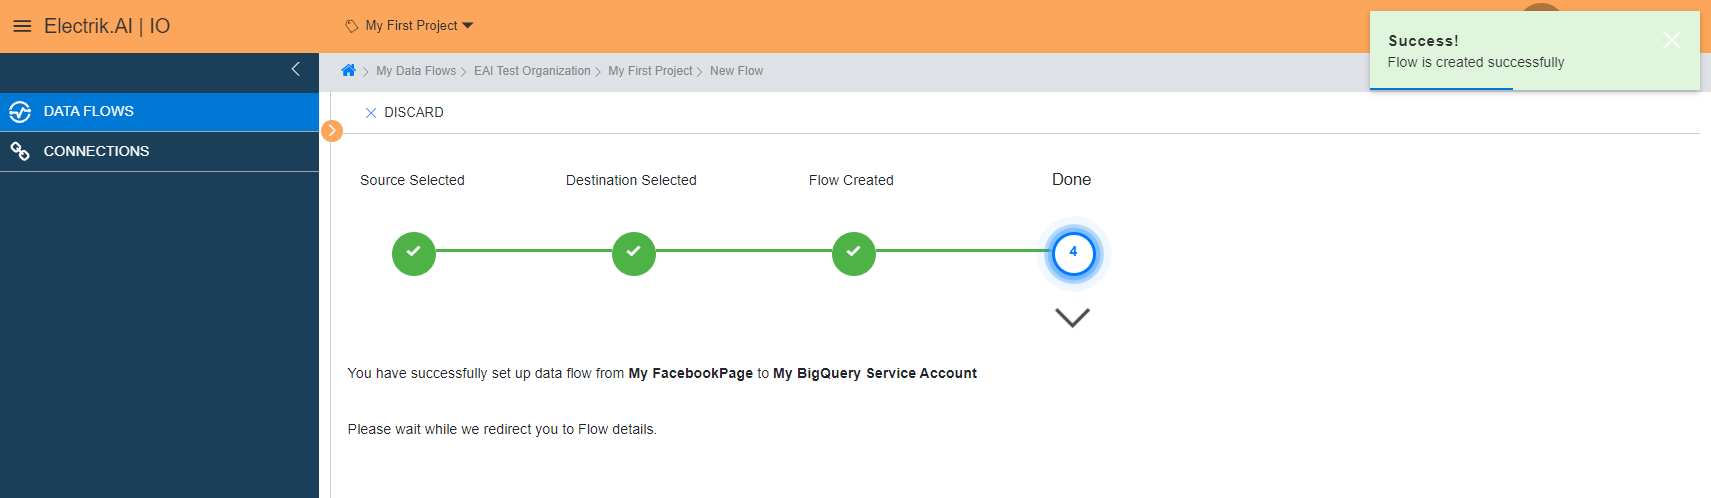 Congratulations, Flow is created. Please wait while you are redirected to Flow Details Screen